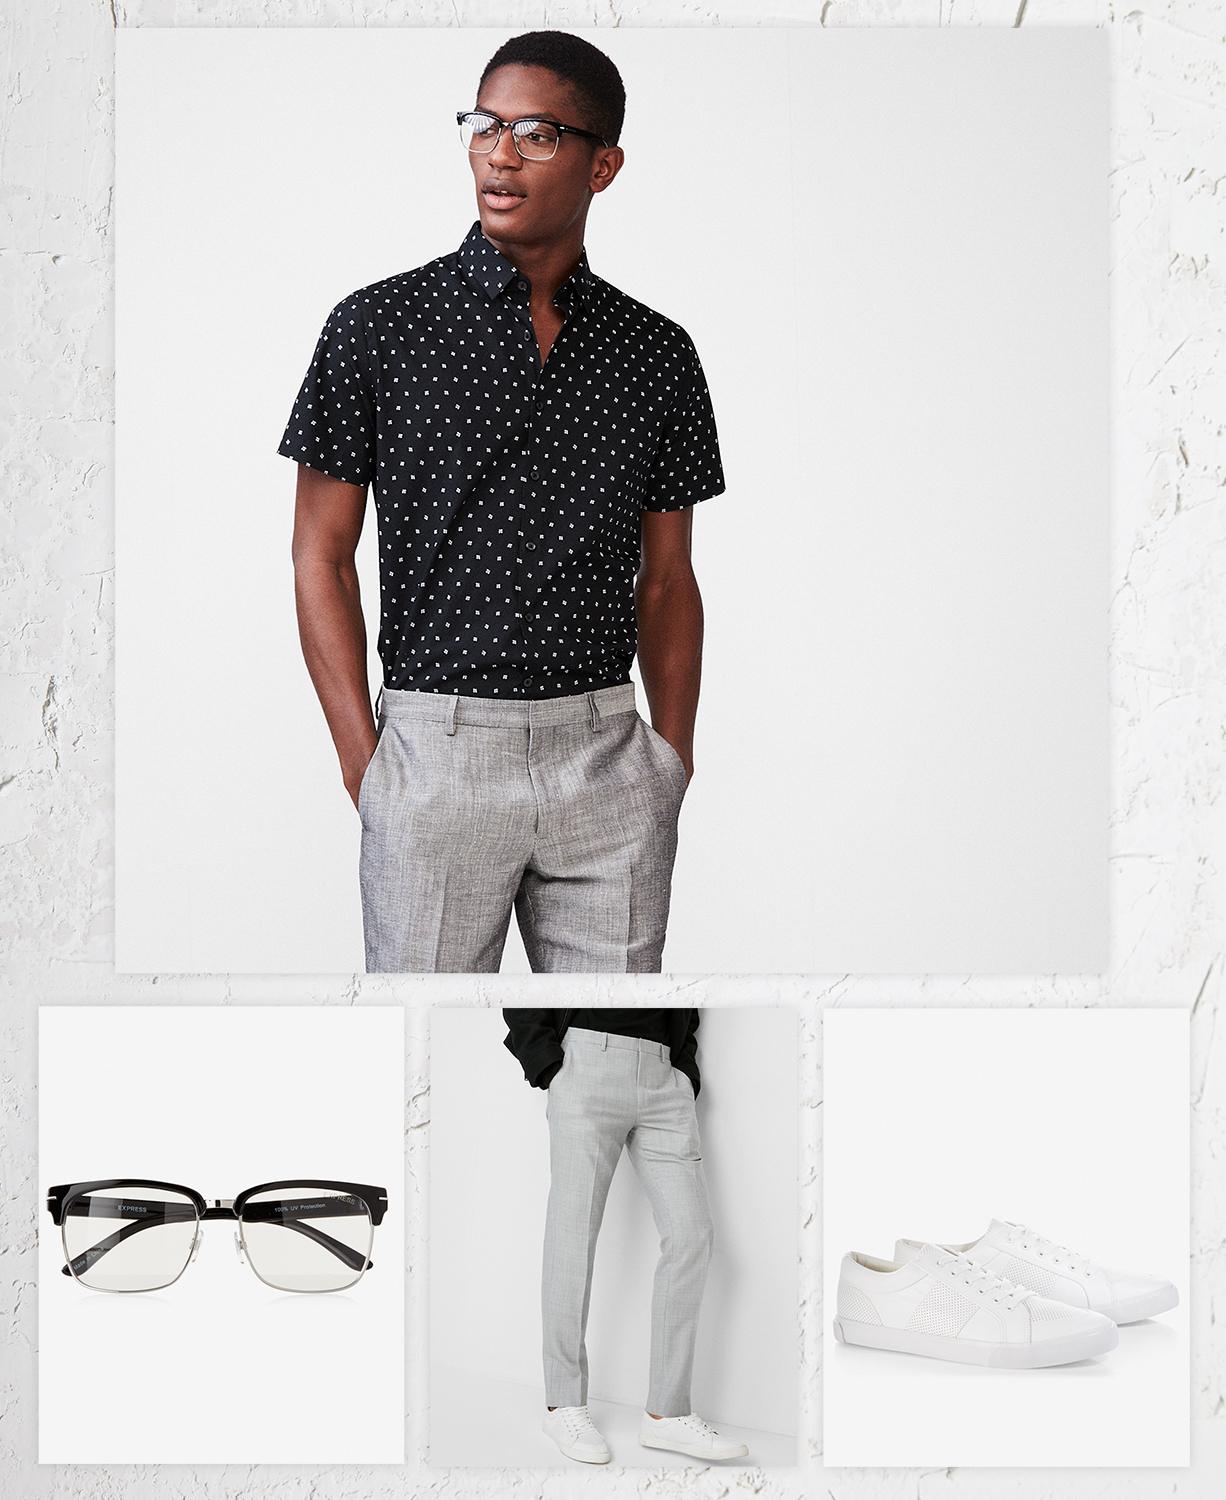 mens-patterned-dress-shirt-glasses-gray-dress-pants-white-sneakers